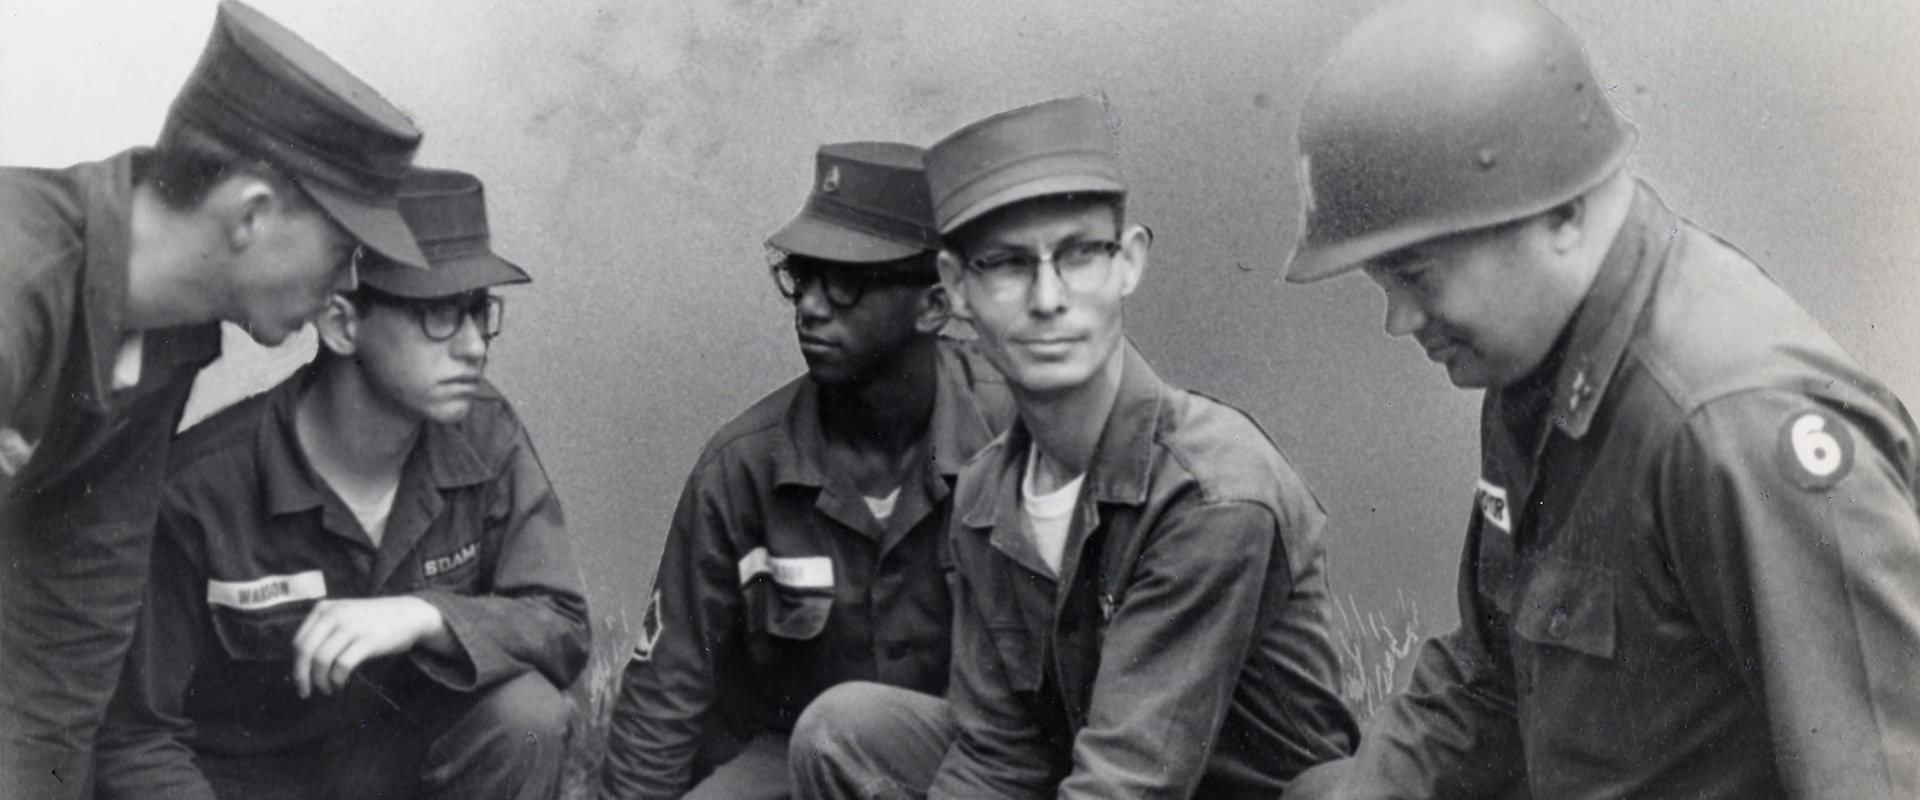 For two years, the Army labeled him a worthless liability - but Doss knew otherwise.